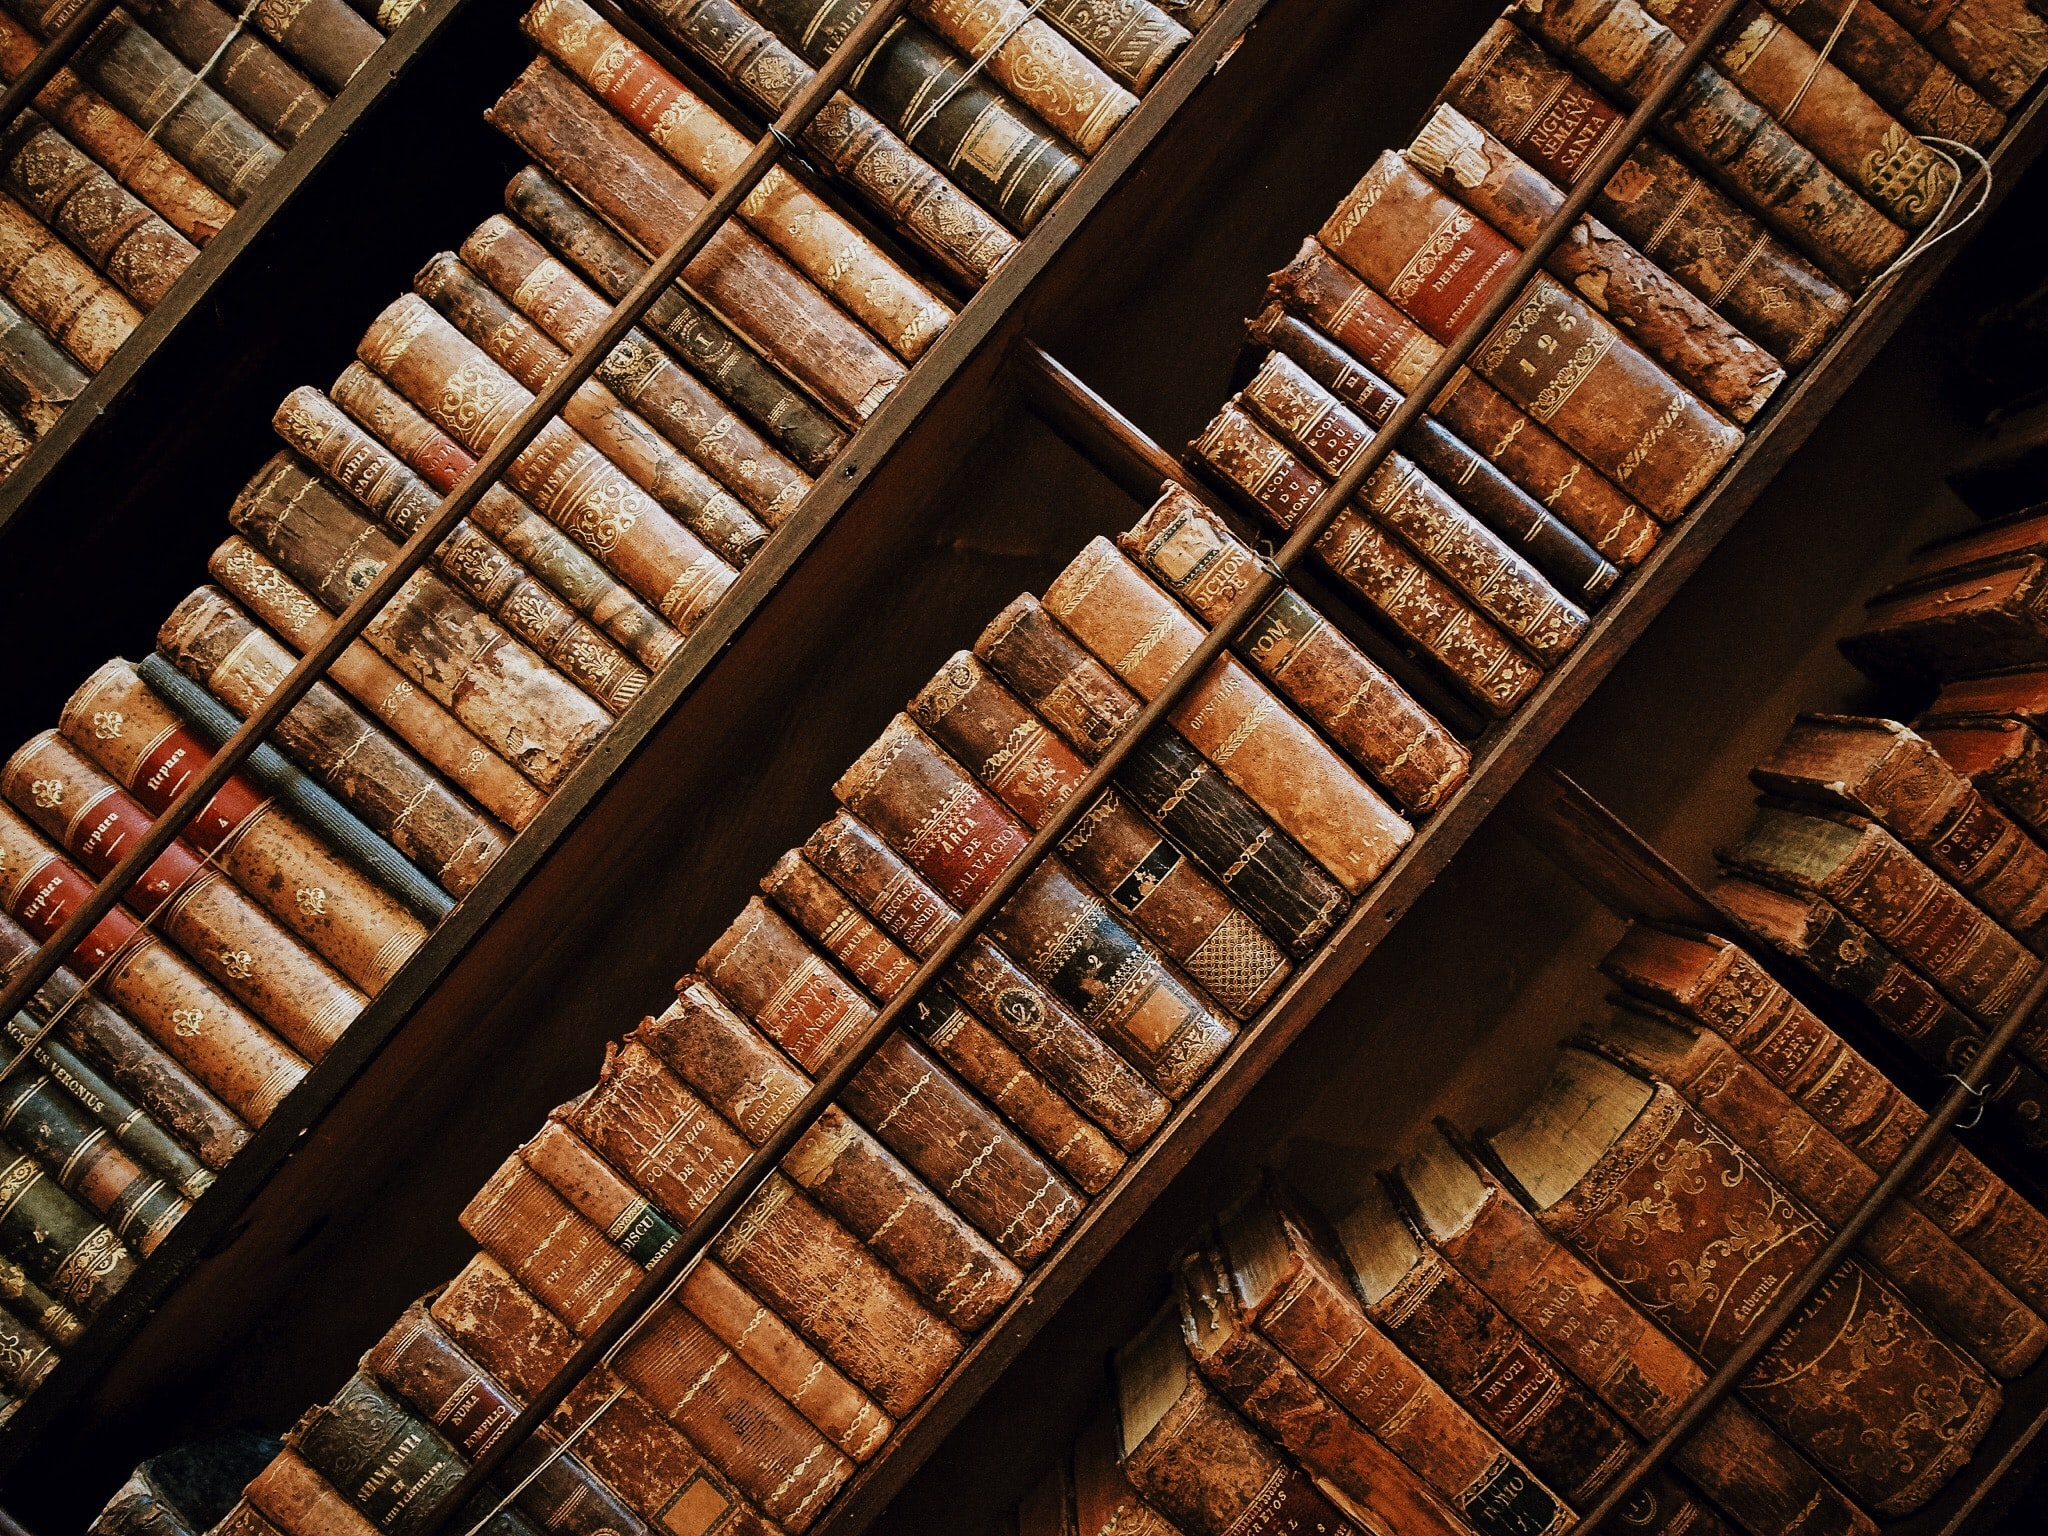 Old antique books in wooden shelves at the library